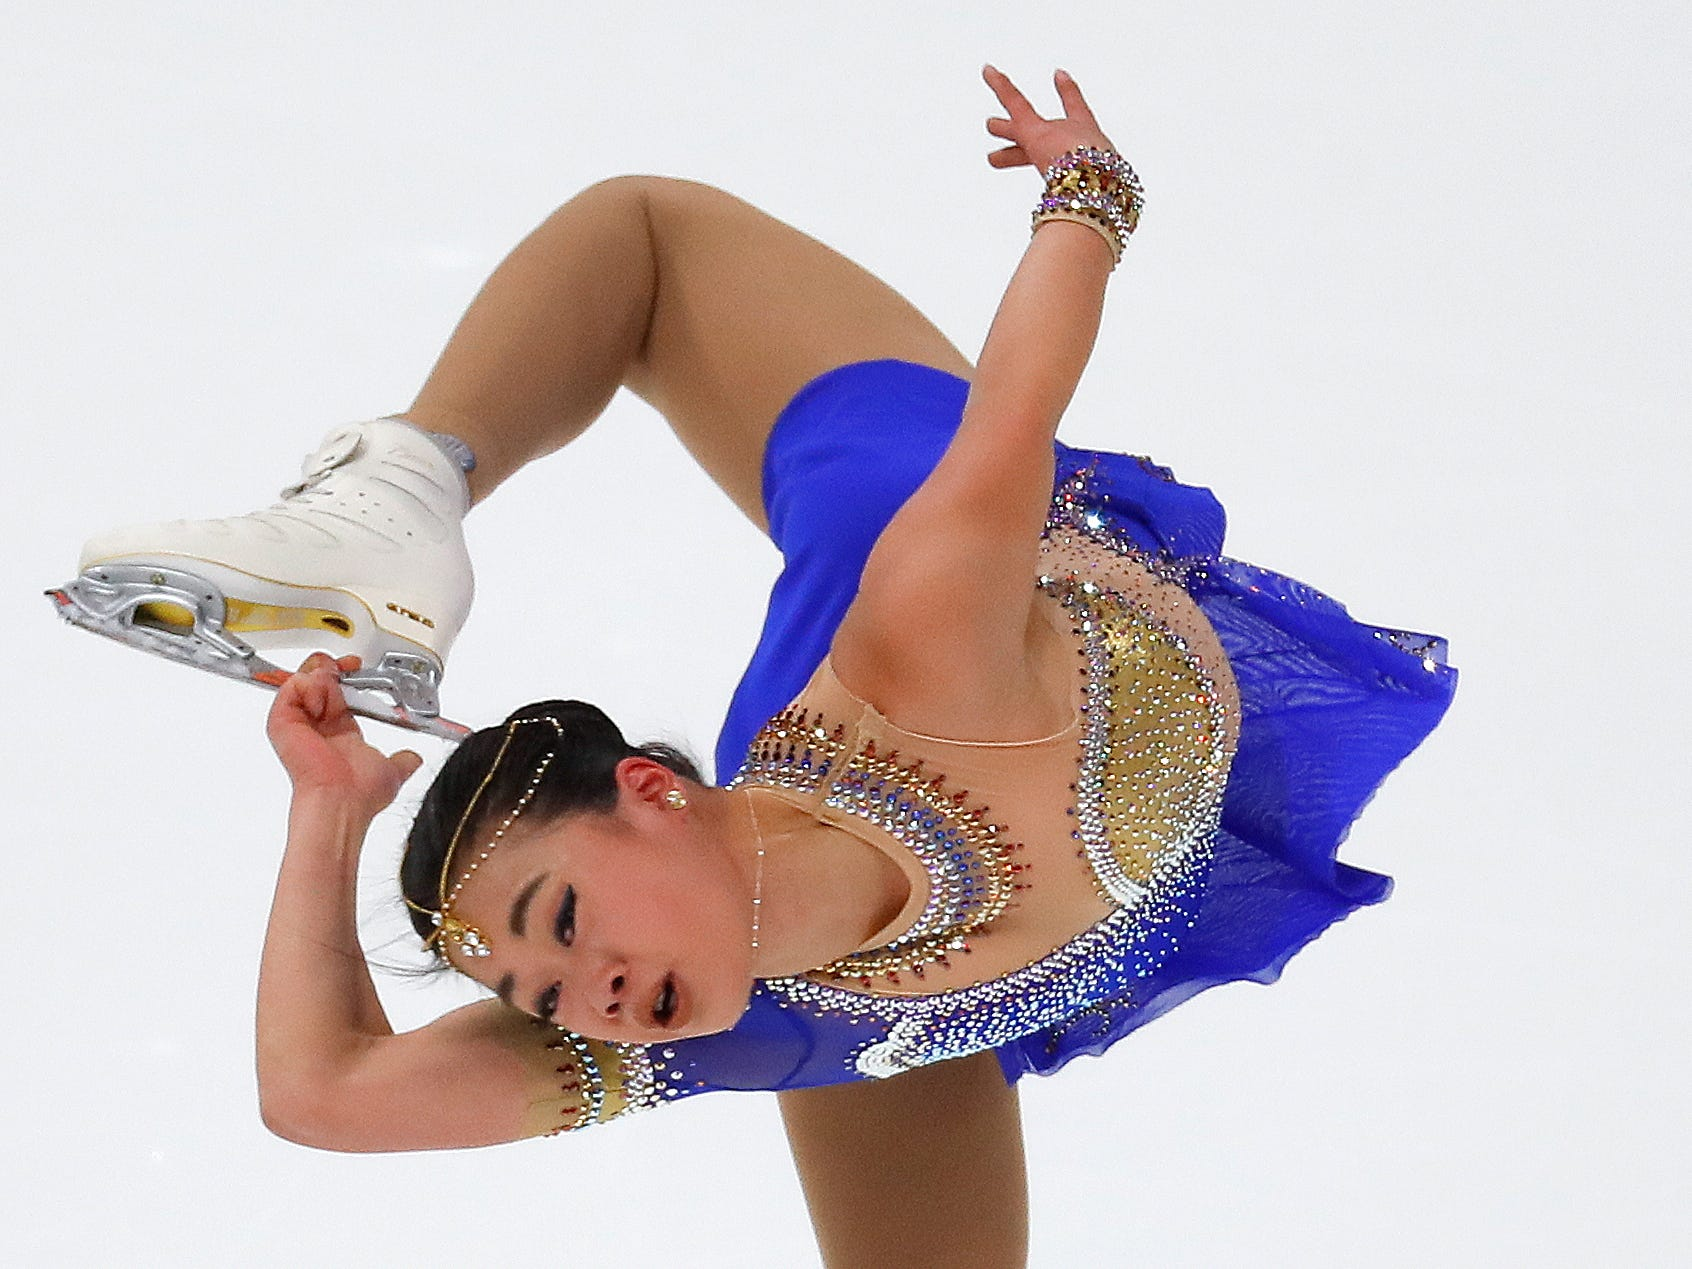 Brynne McIsaac performs during her women's free skate program at the U.S. Figure Skating Championships, Friday, Jan. 25, 2019, in Detroit. (AP Photo/Paul Sancya)